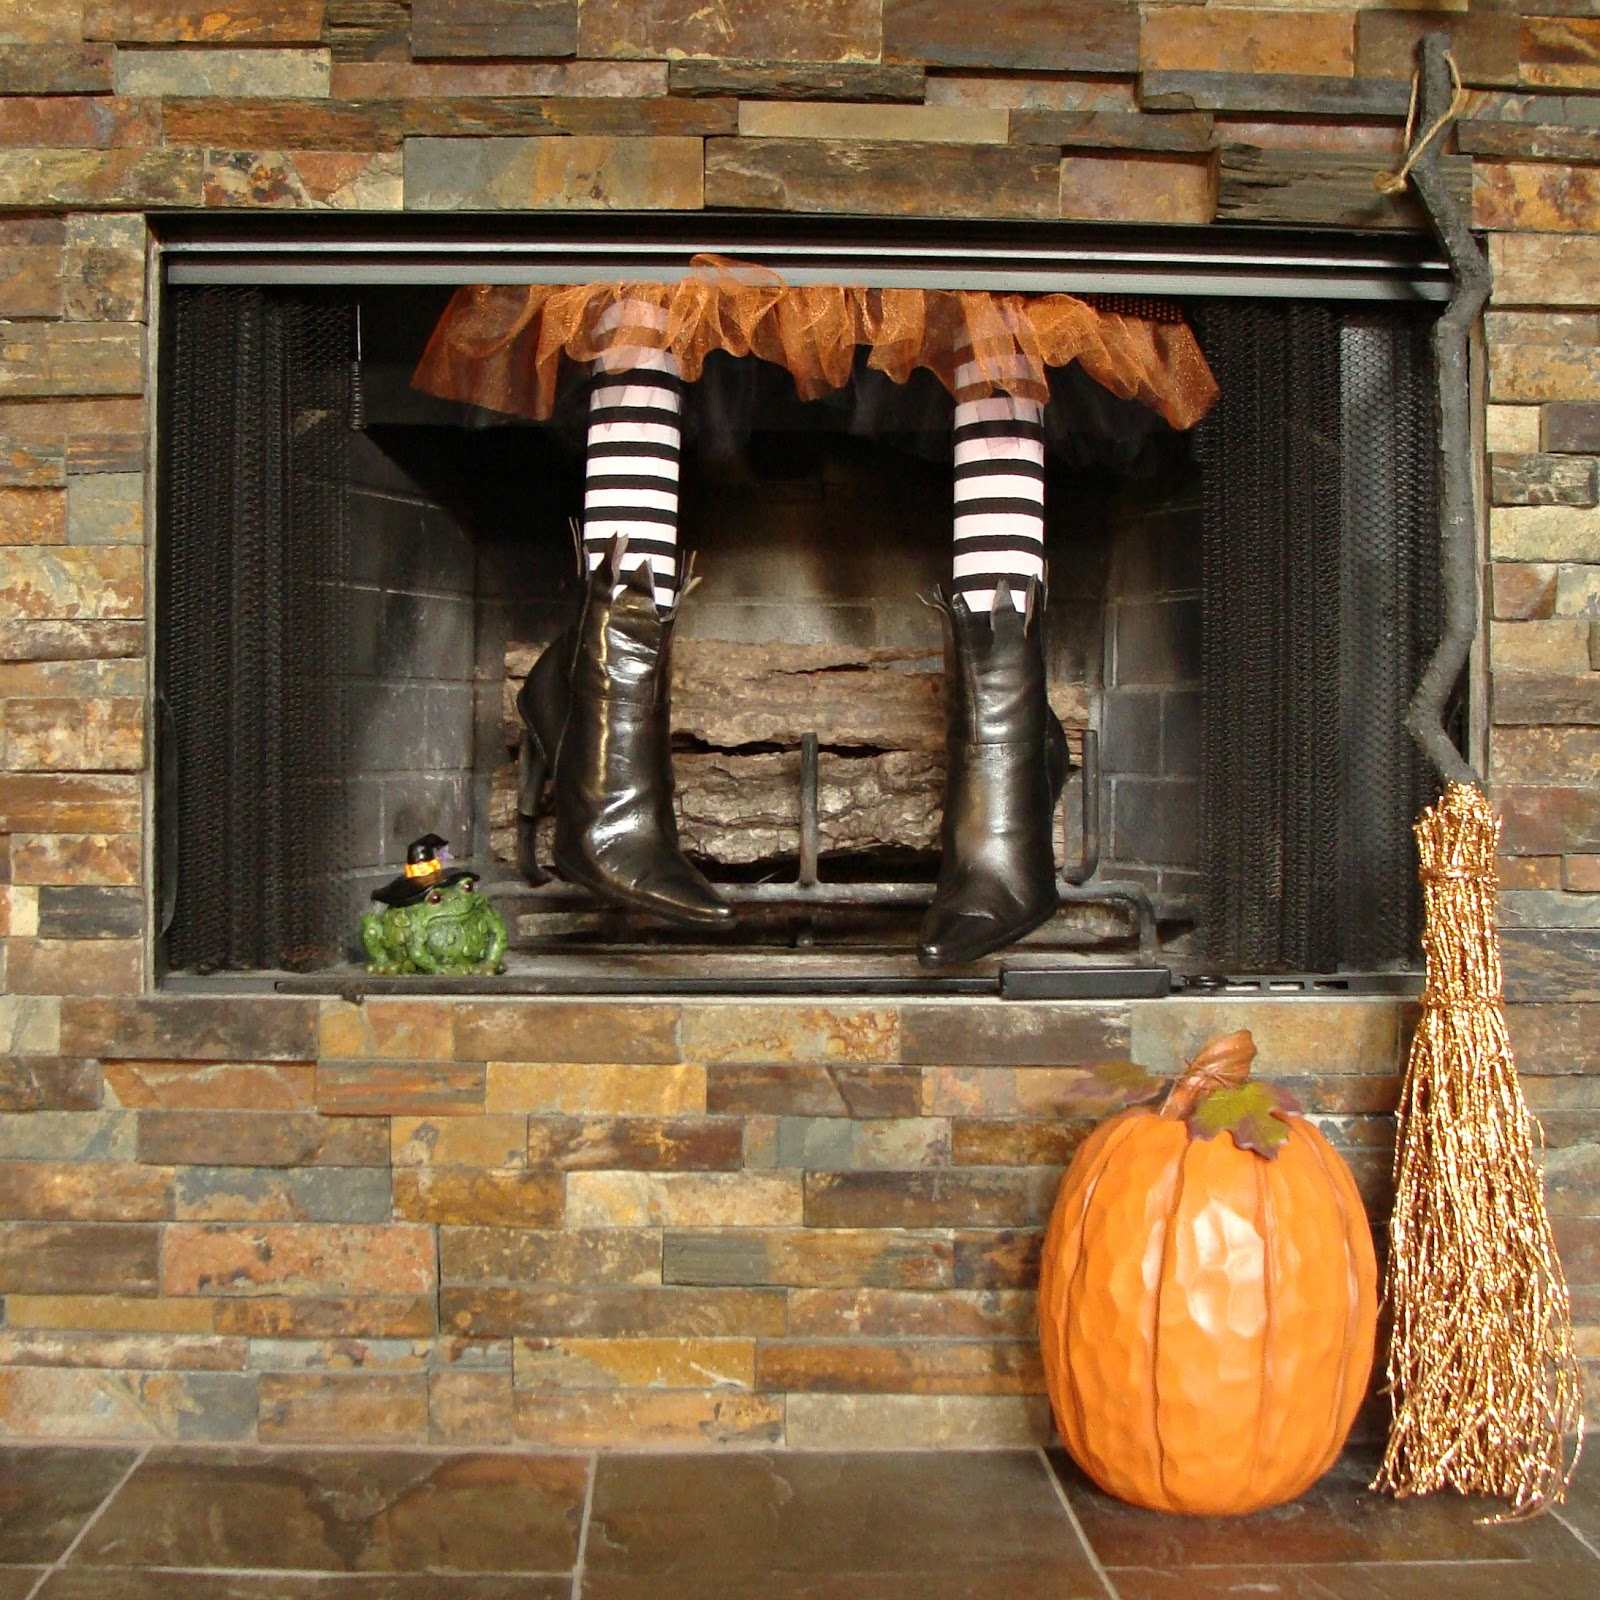 Fireplace Halloween Decorations: Crafty In Crosby: There's A Witch In Our Fireplace